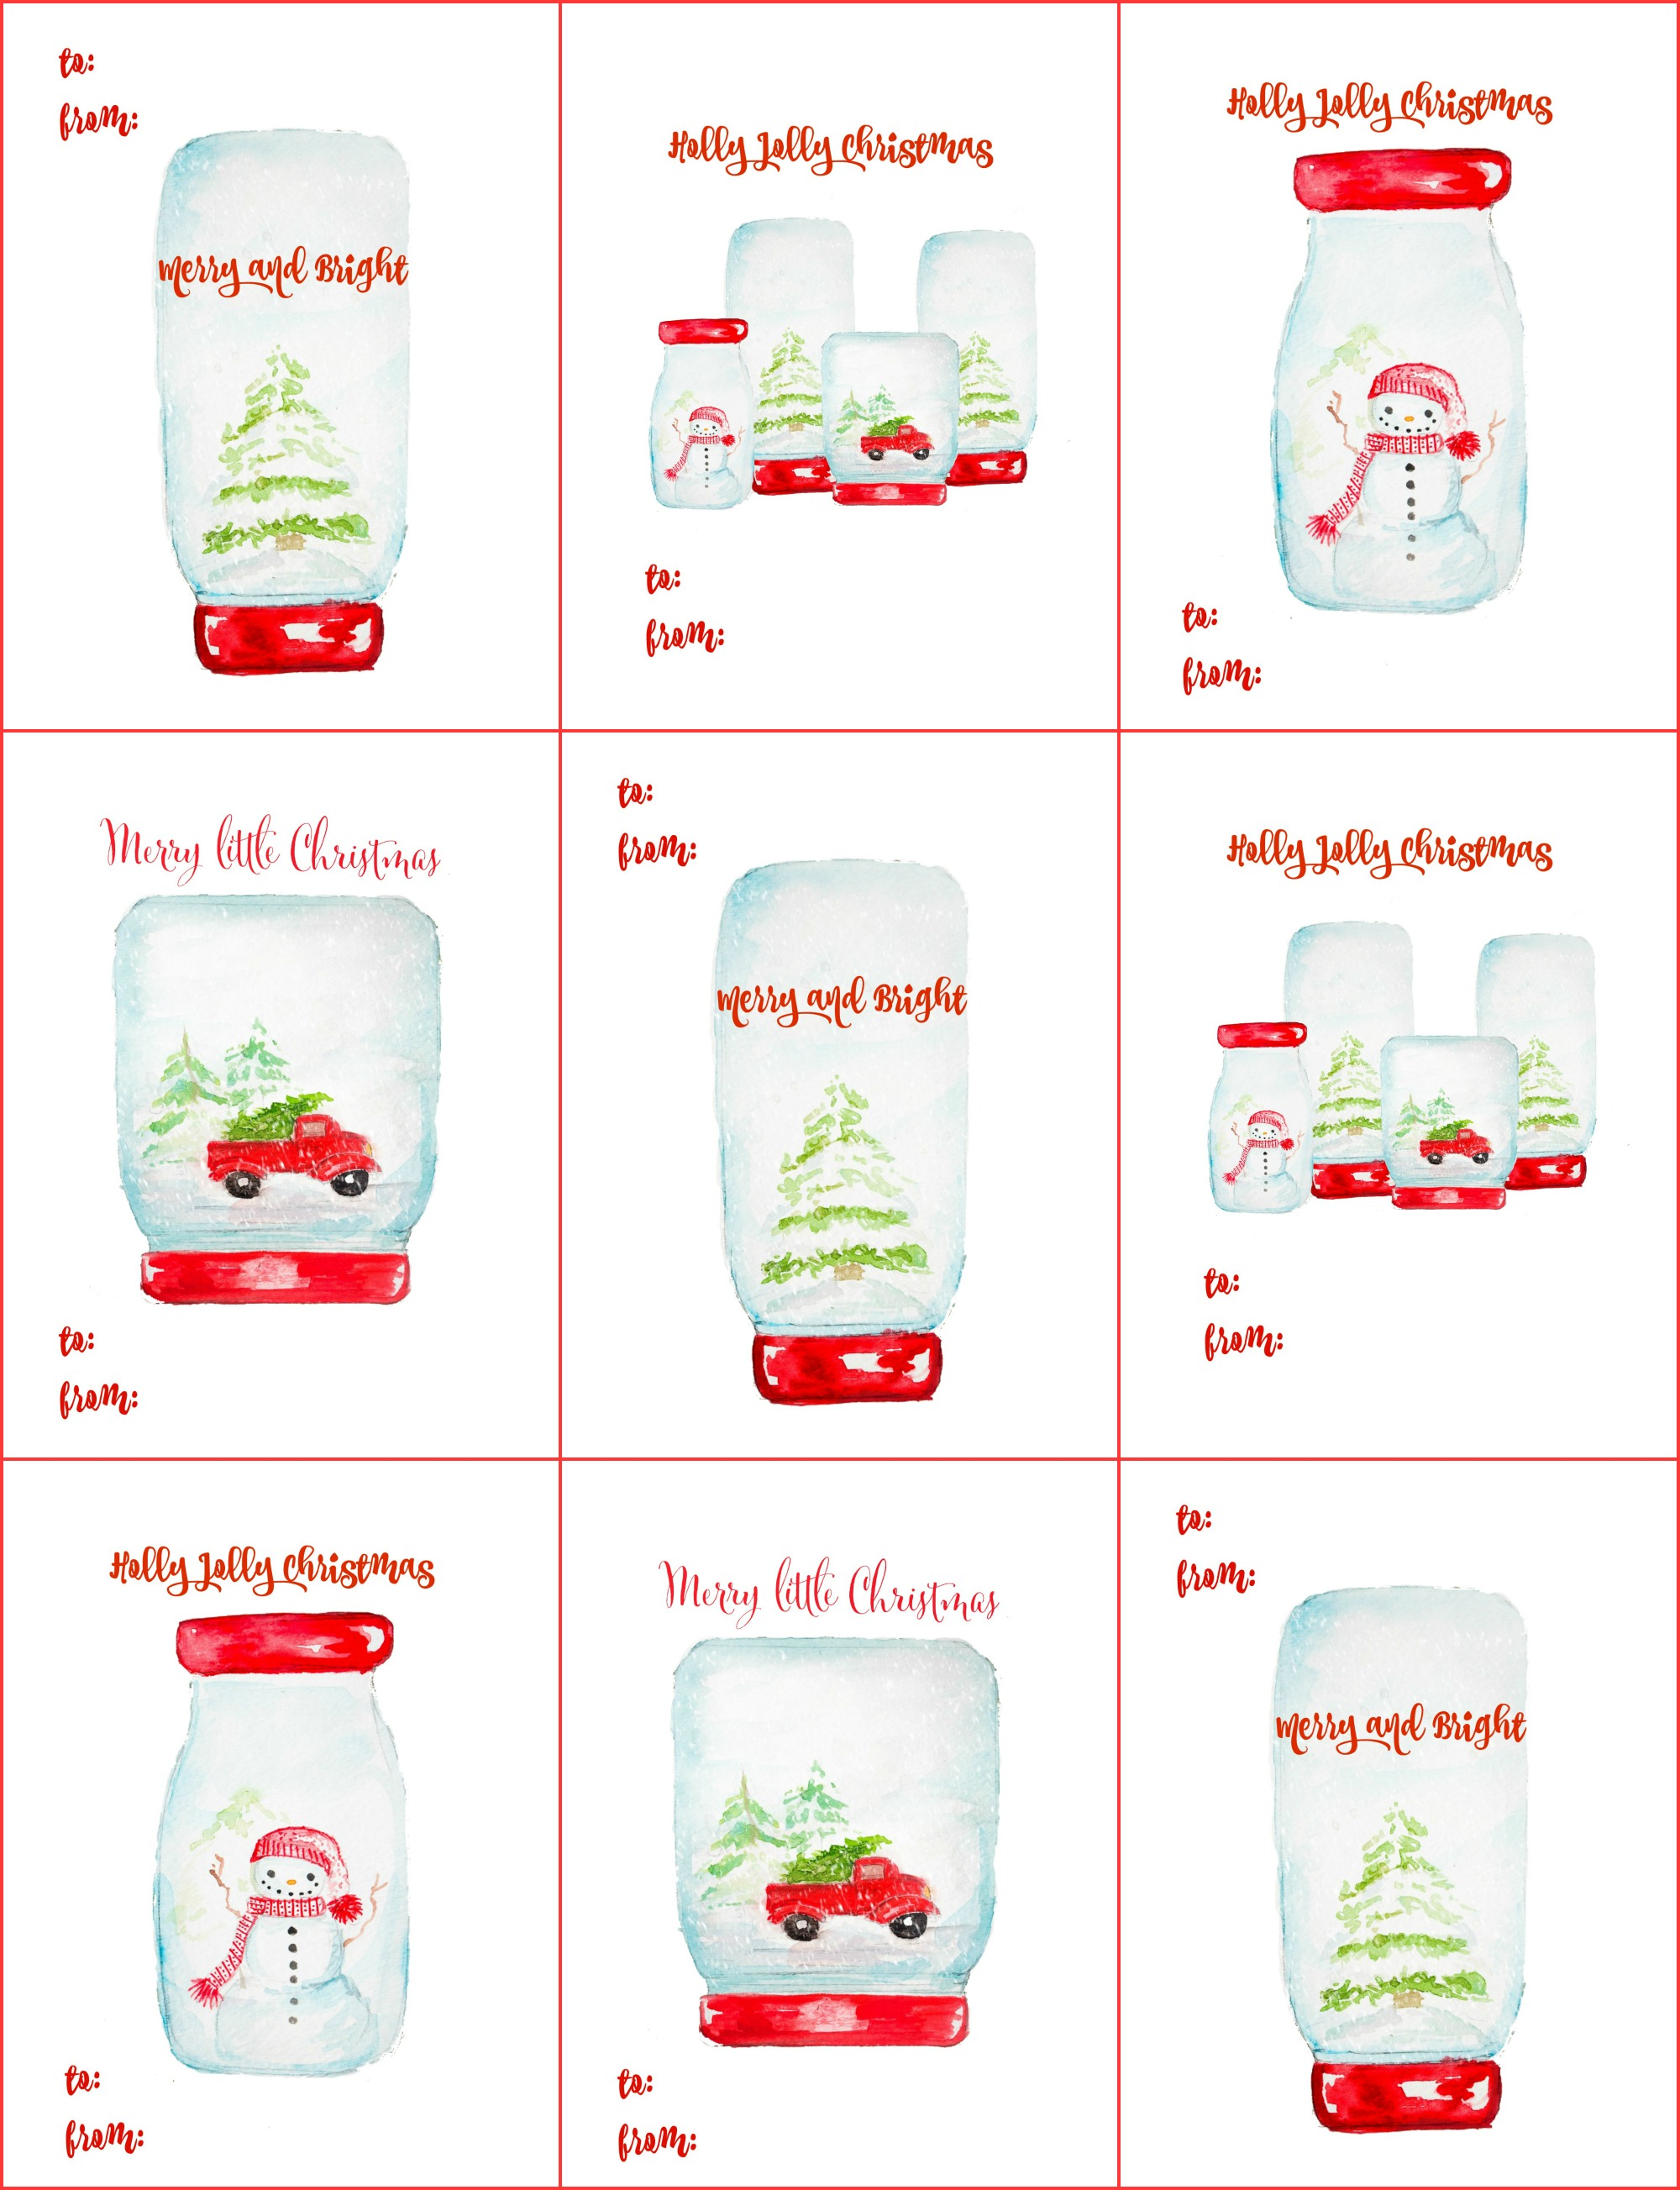 photo about Christmas Tags Printable titled Free of charge Xmas reward tag printables